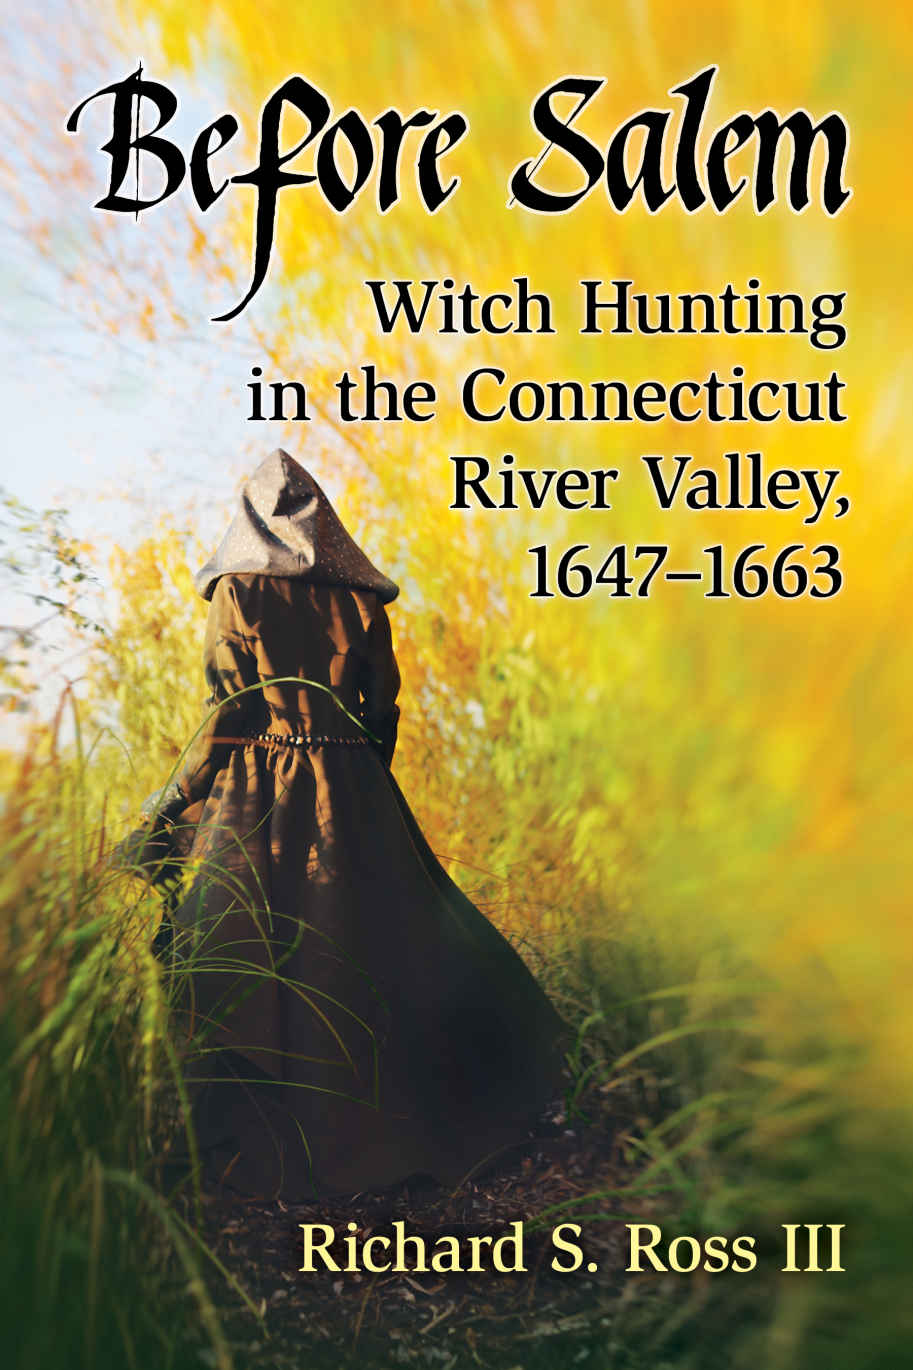 Before Salem: Witch Hunting in CT